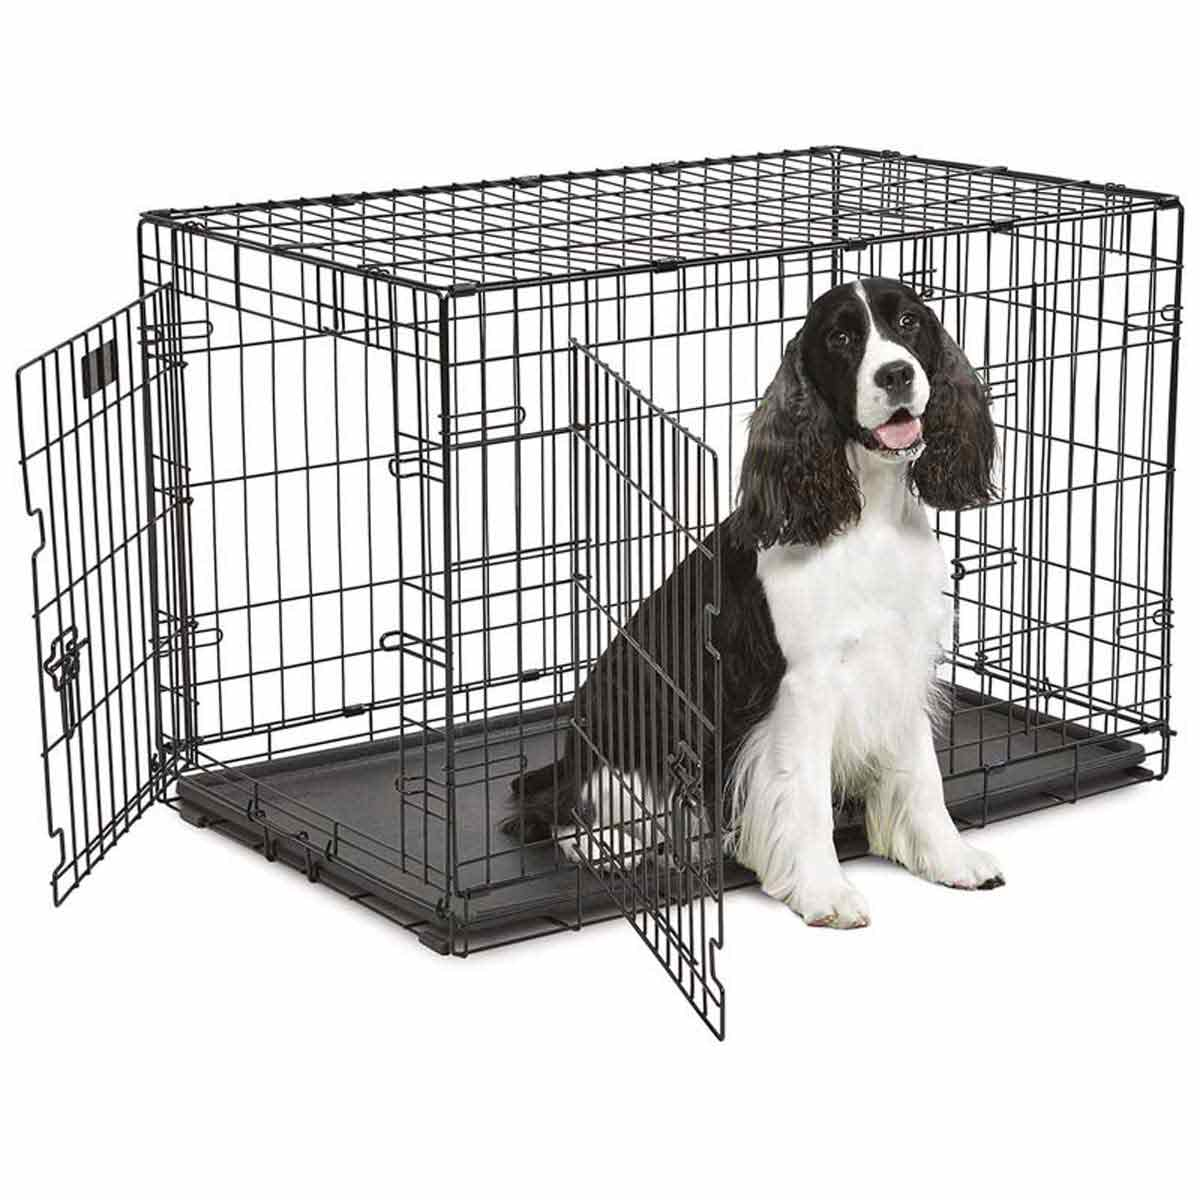 Midwest ConTour Crate Double Door for Dogs - 36 inches by 23 inches by 24 inches